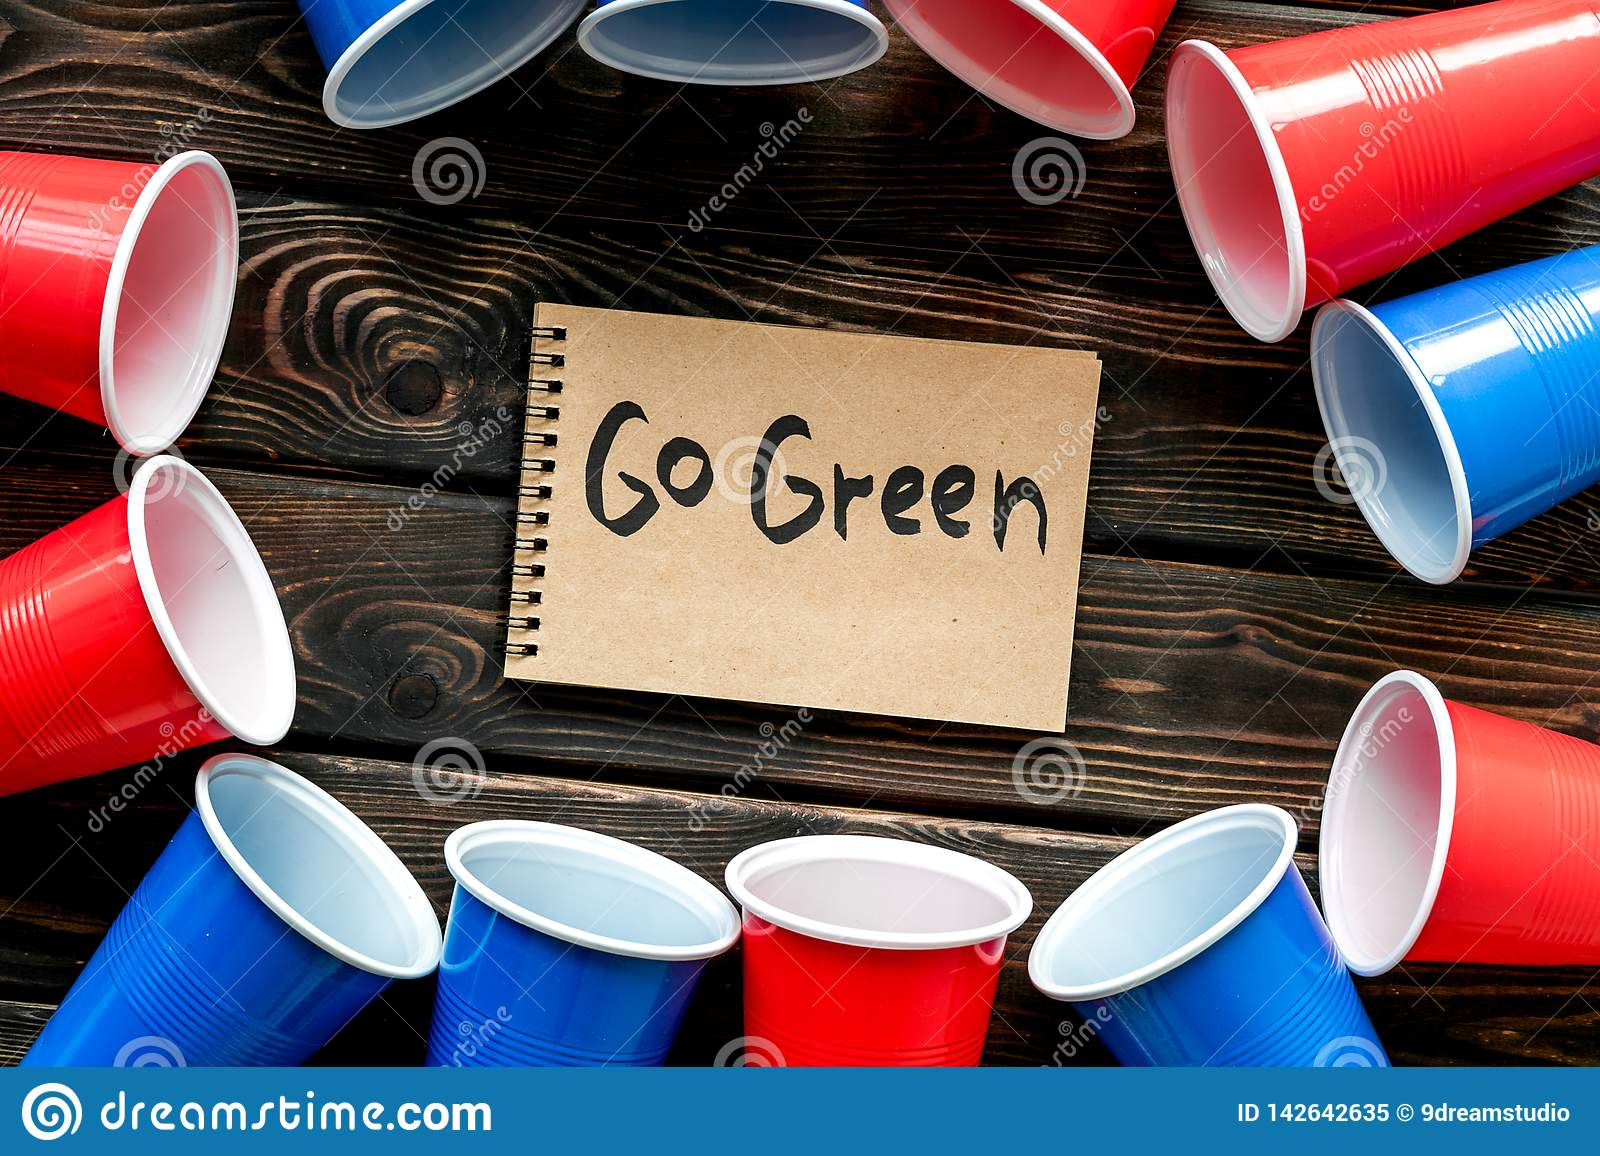 Go Green Eco Concept And Injunction On The Use Of Plastic